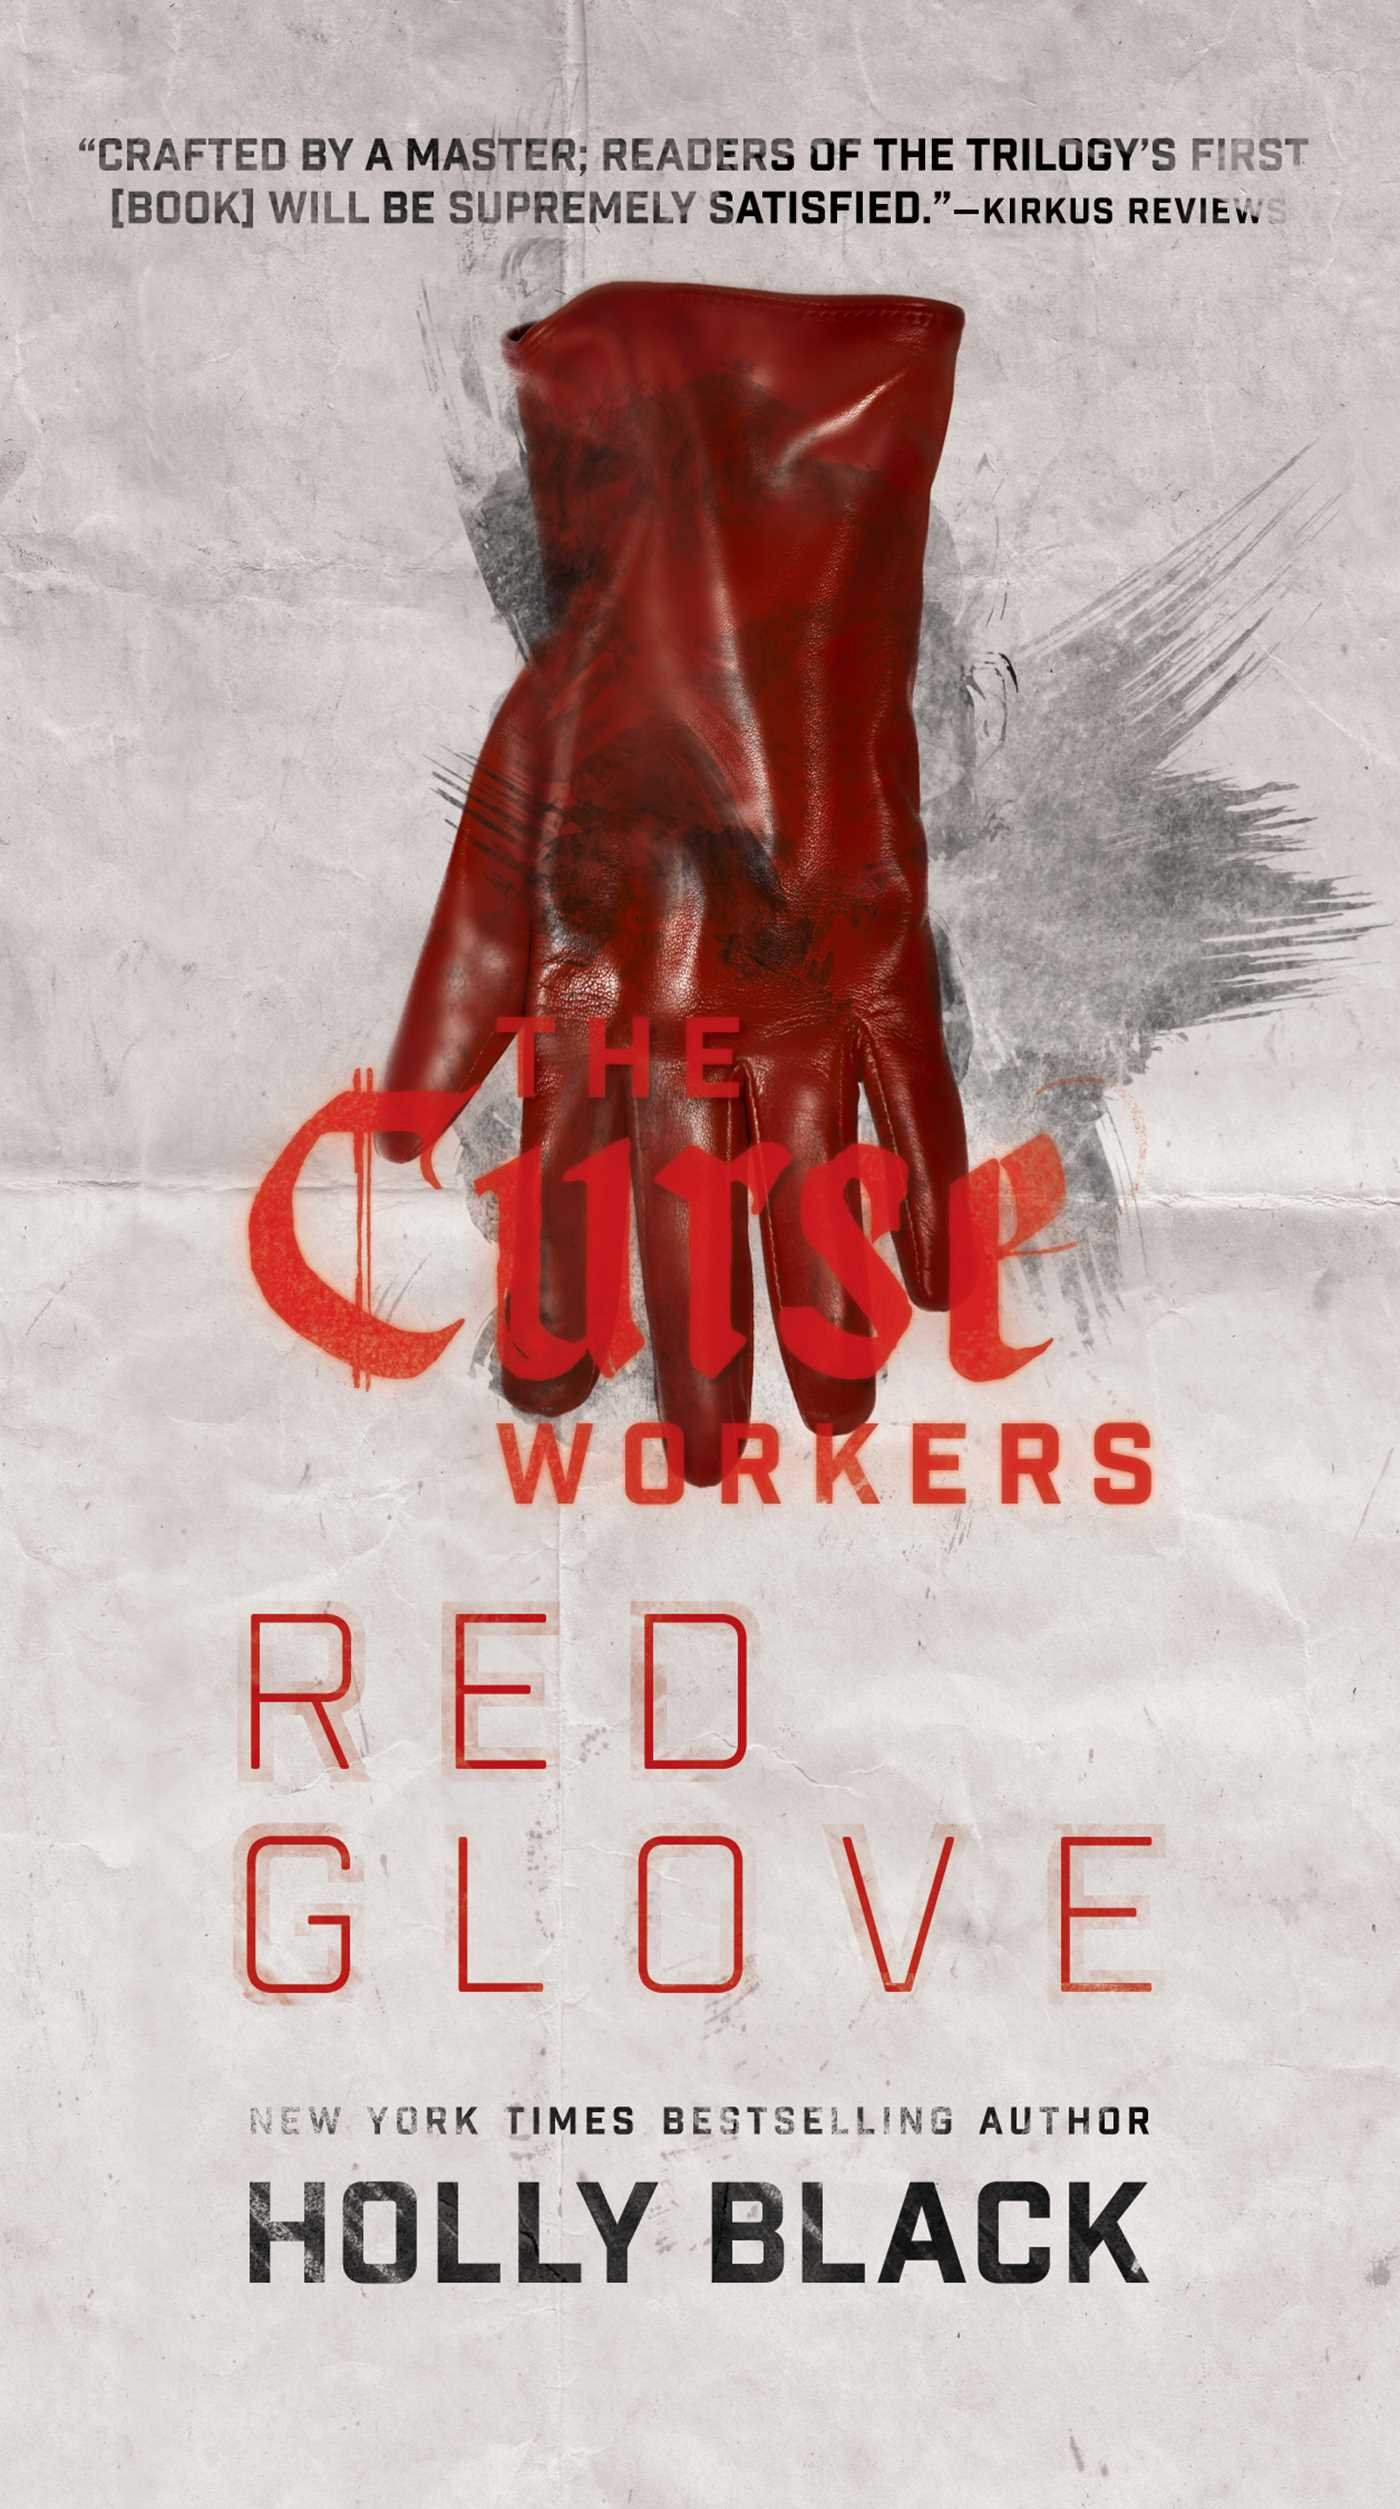 Red Glove (The Curse Workers) ebook